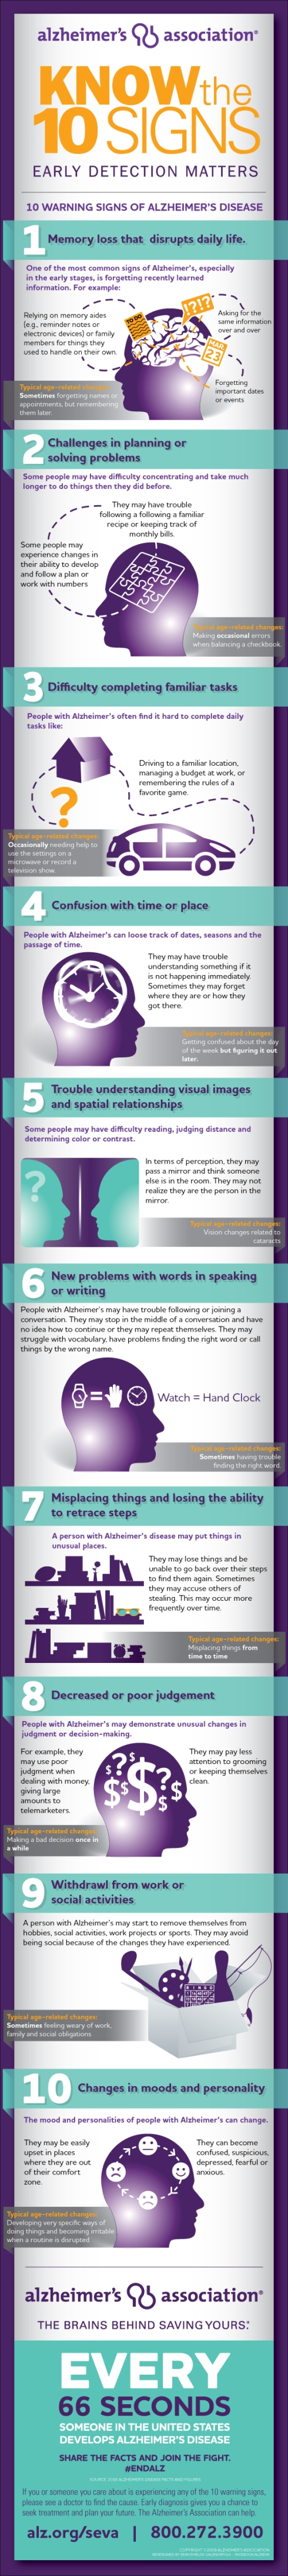 KnowThe10Signs_infographic1